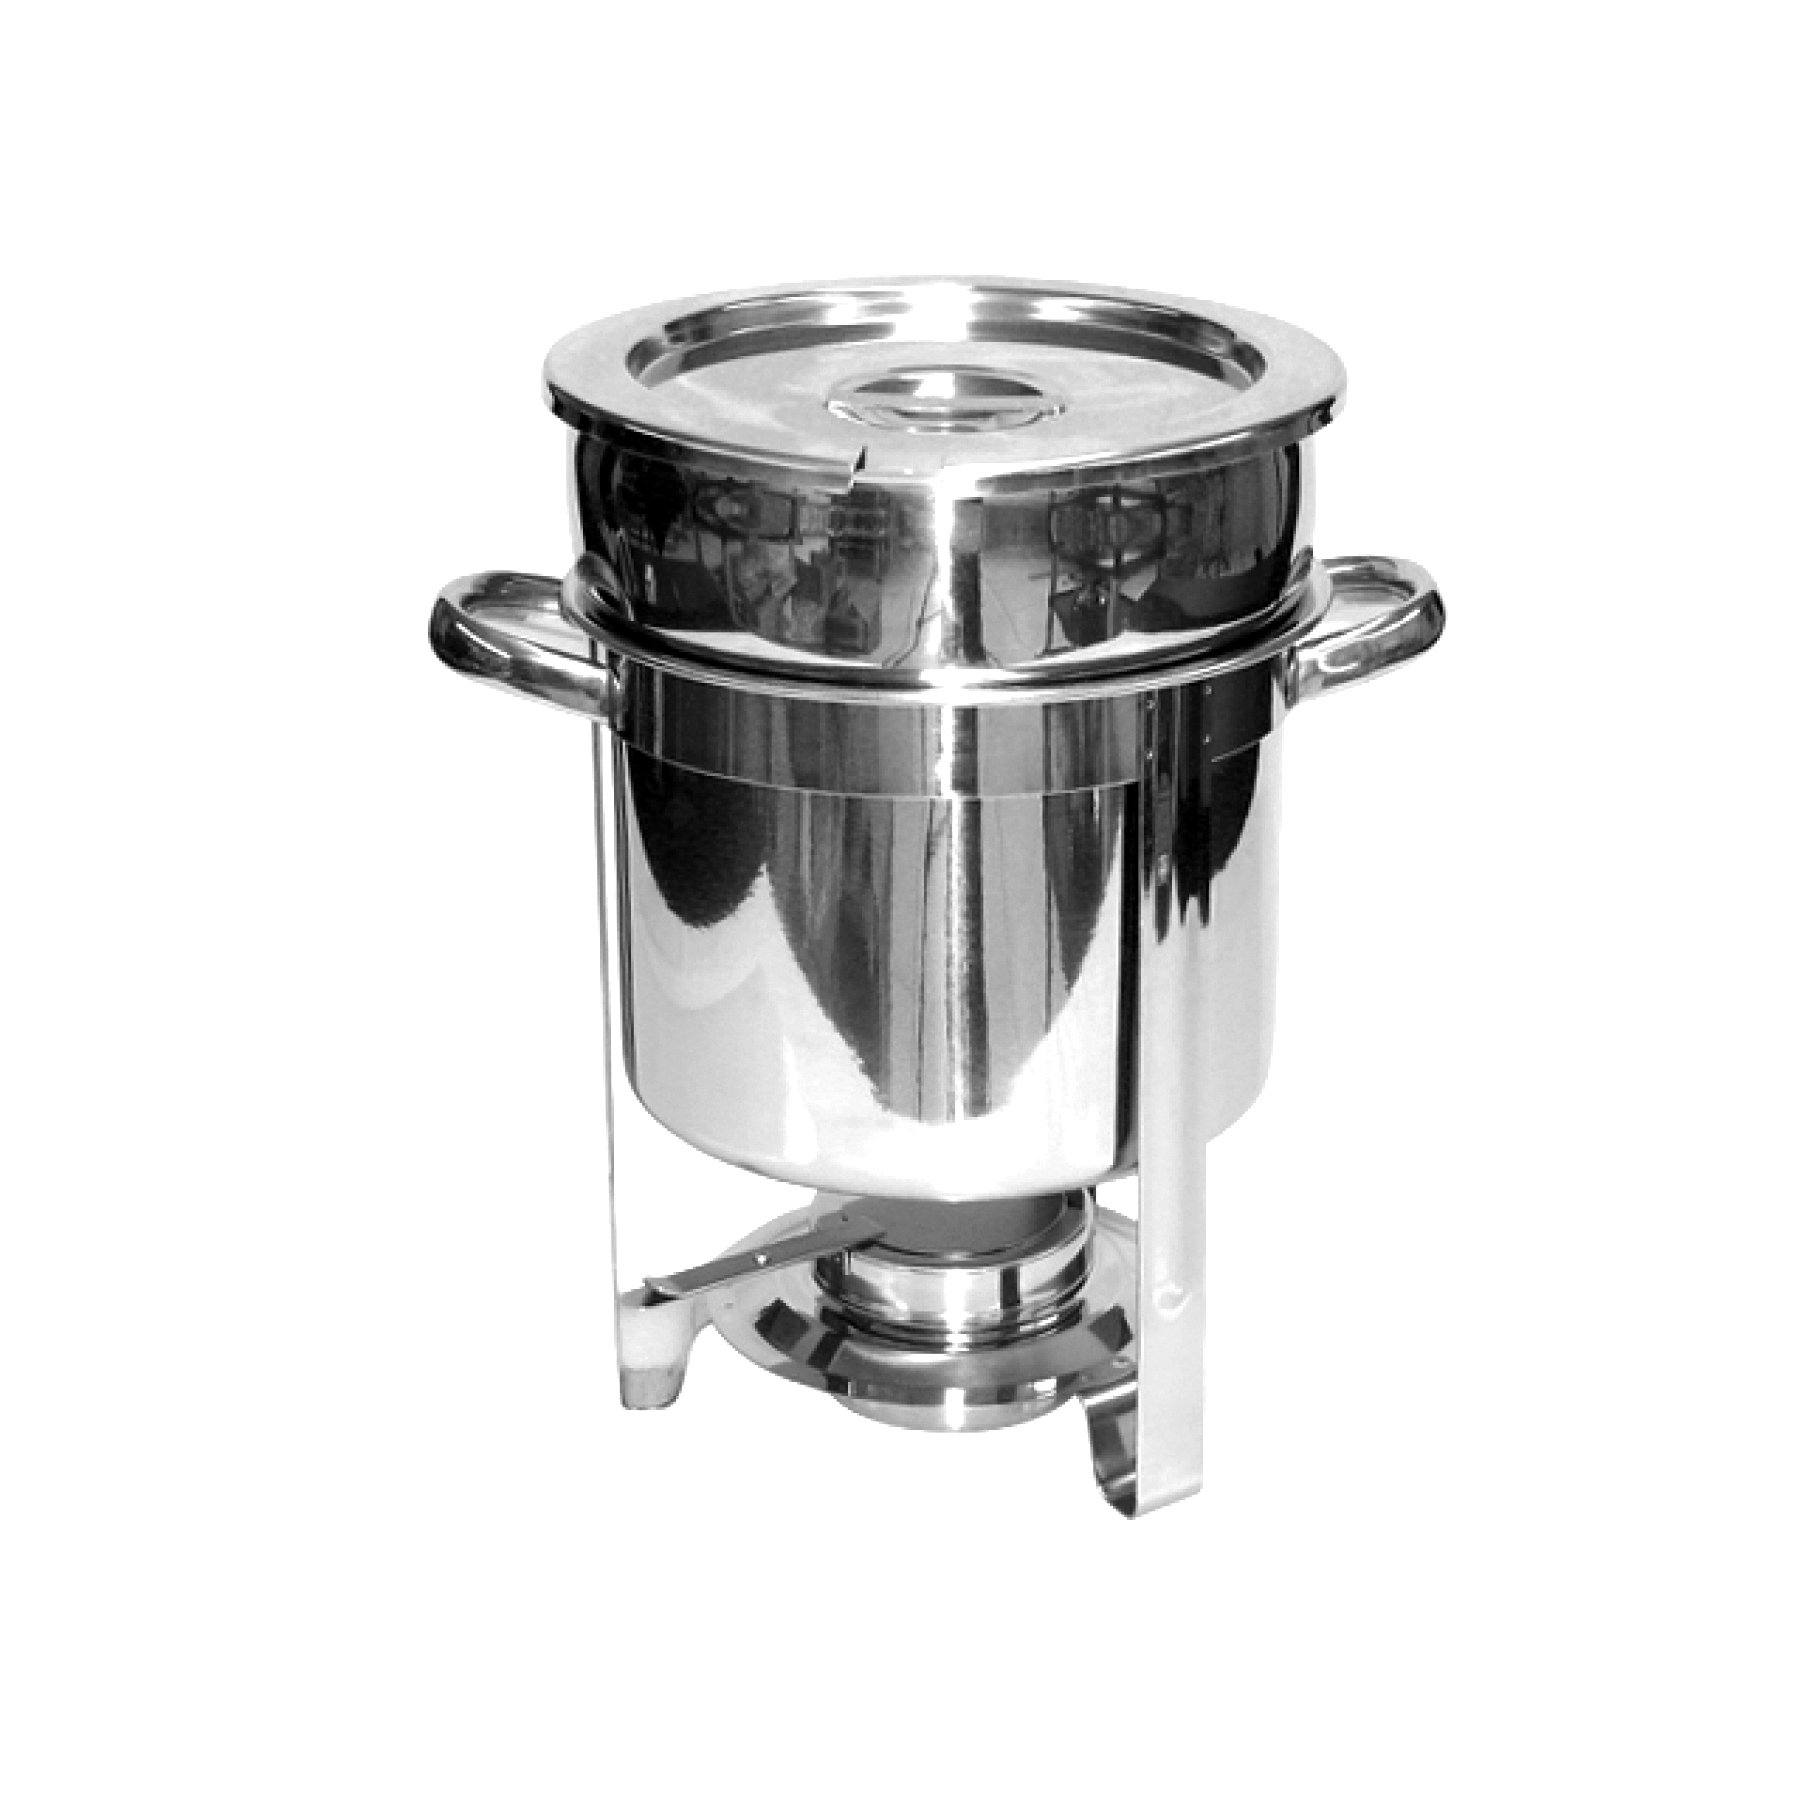 Excellanté Stainless Steel 7 Quart Marmite Chafer